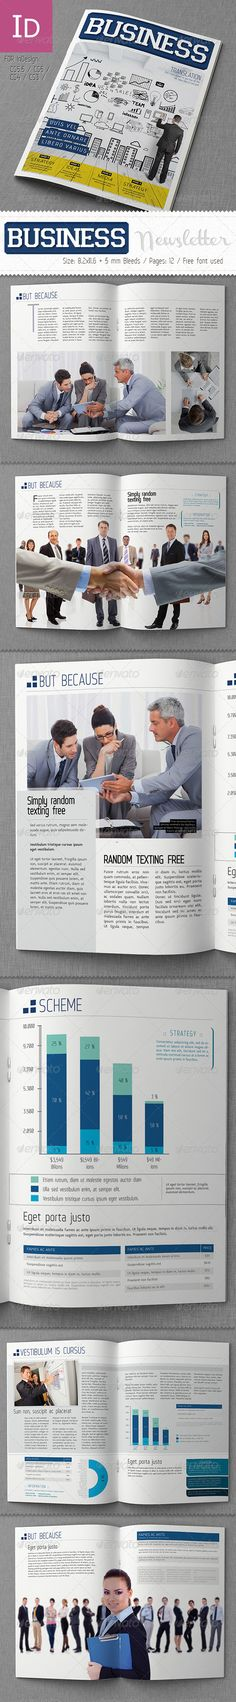 Corporate Newsletter Indesign Template - Newsletters Print - business newsletter